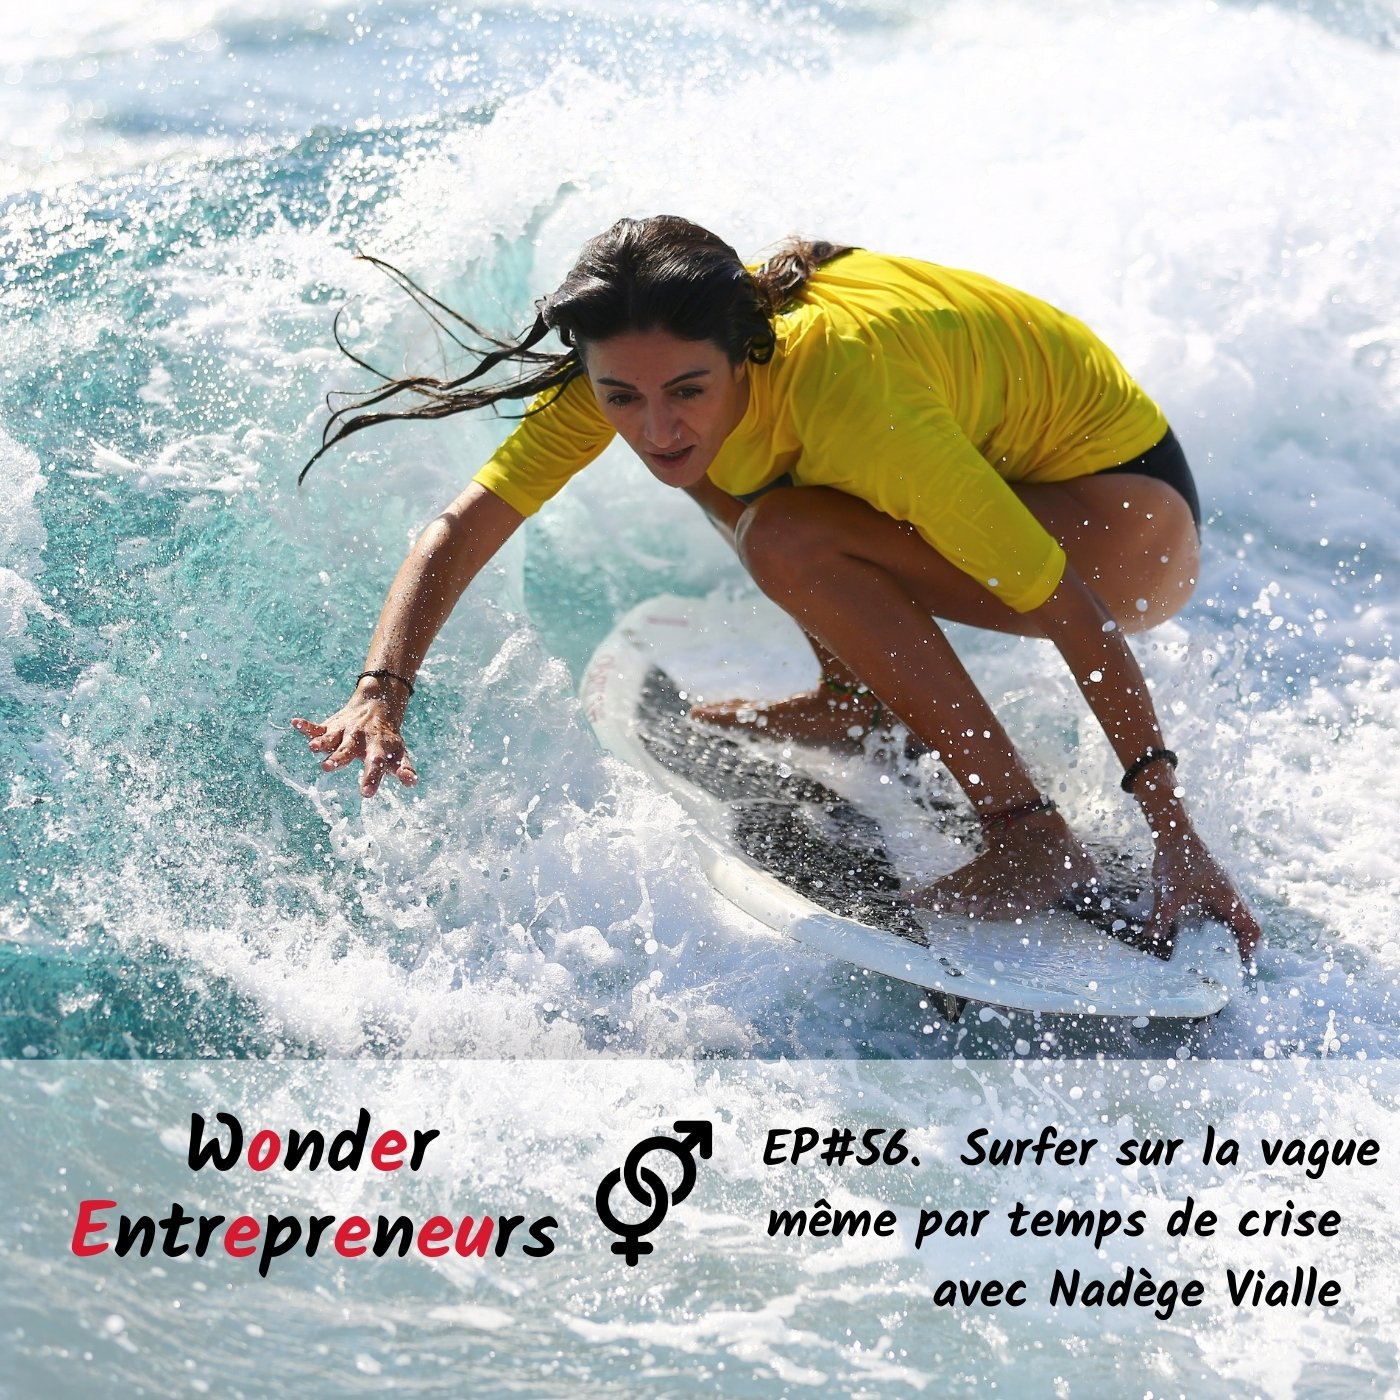 Ep 56 Comment Surfer sur la vague même par tempse crise podcast wonder entrepreneurs